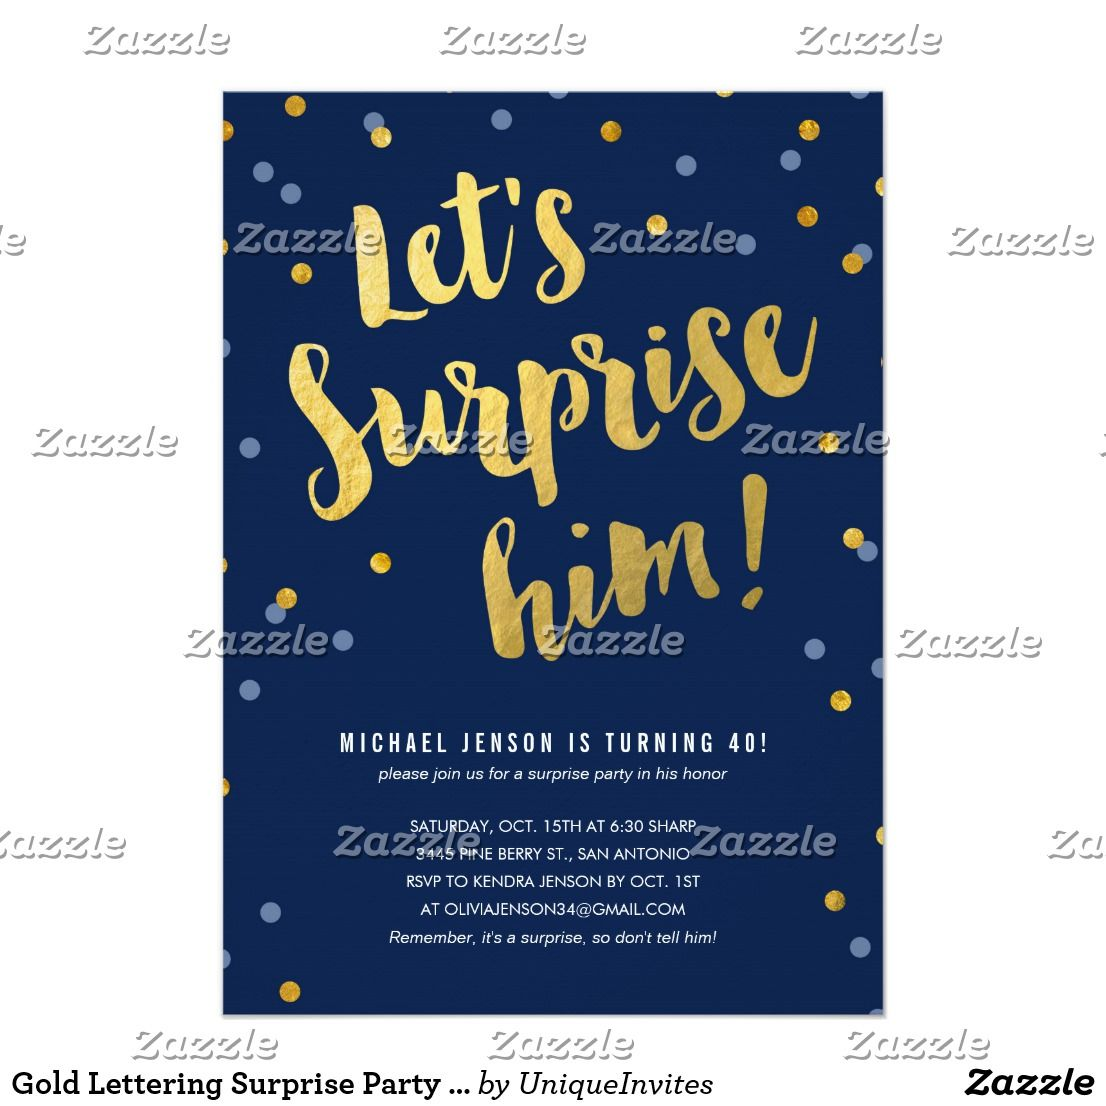 Gold Lettering Surprise Party Invitations For Him Zazzle Com Surprise Birthday Party Invitations Surprise Birthday Invitations Surprise Party Invitations